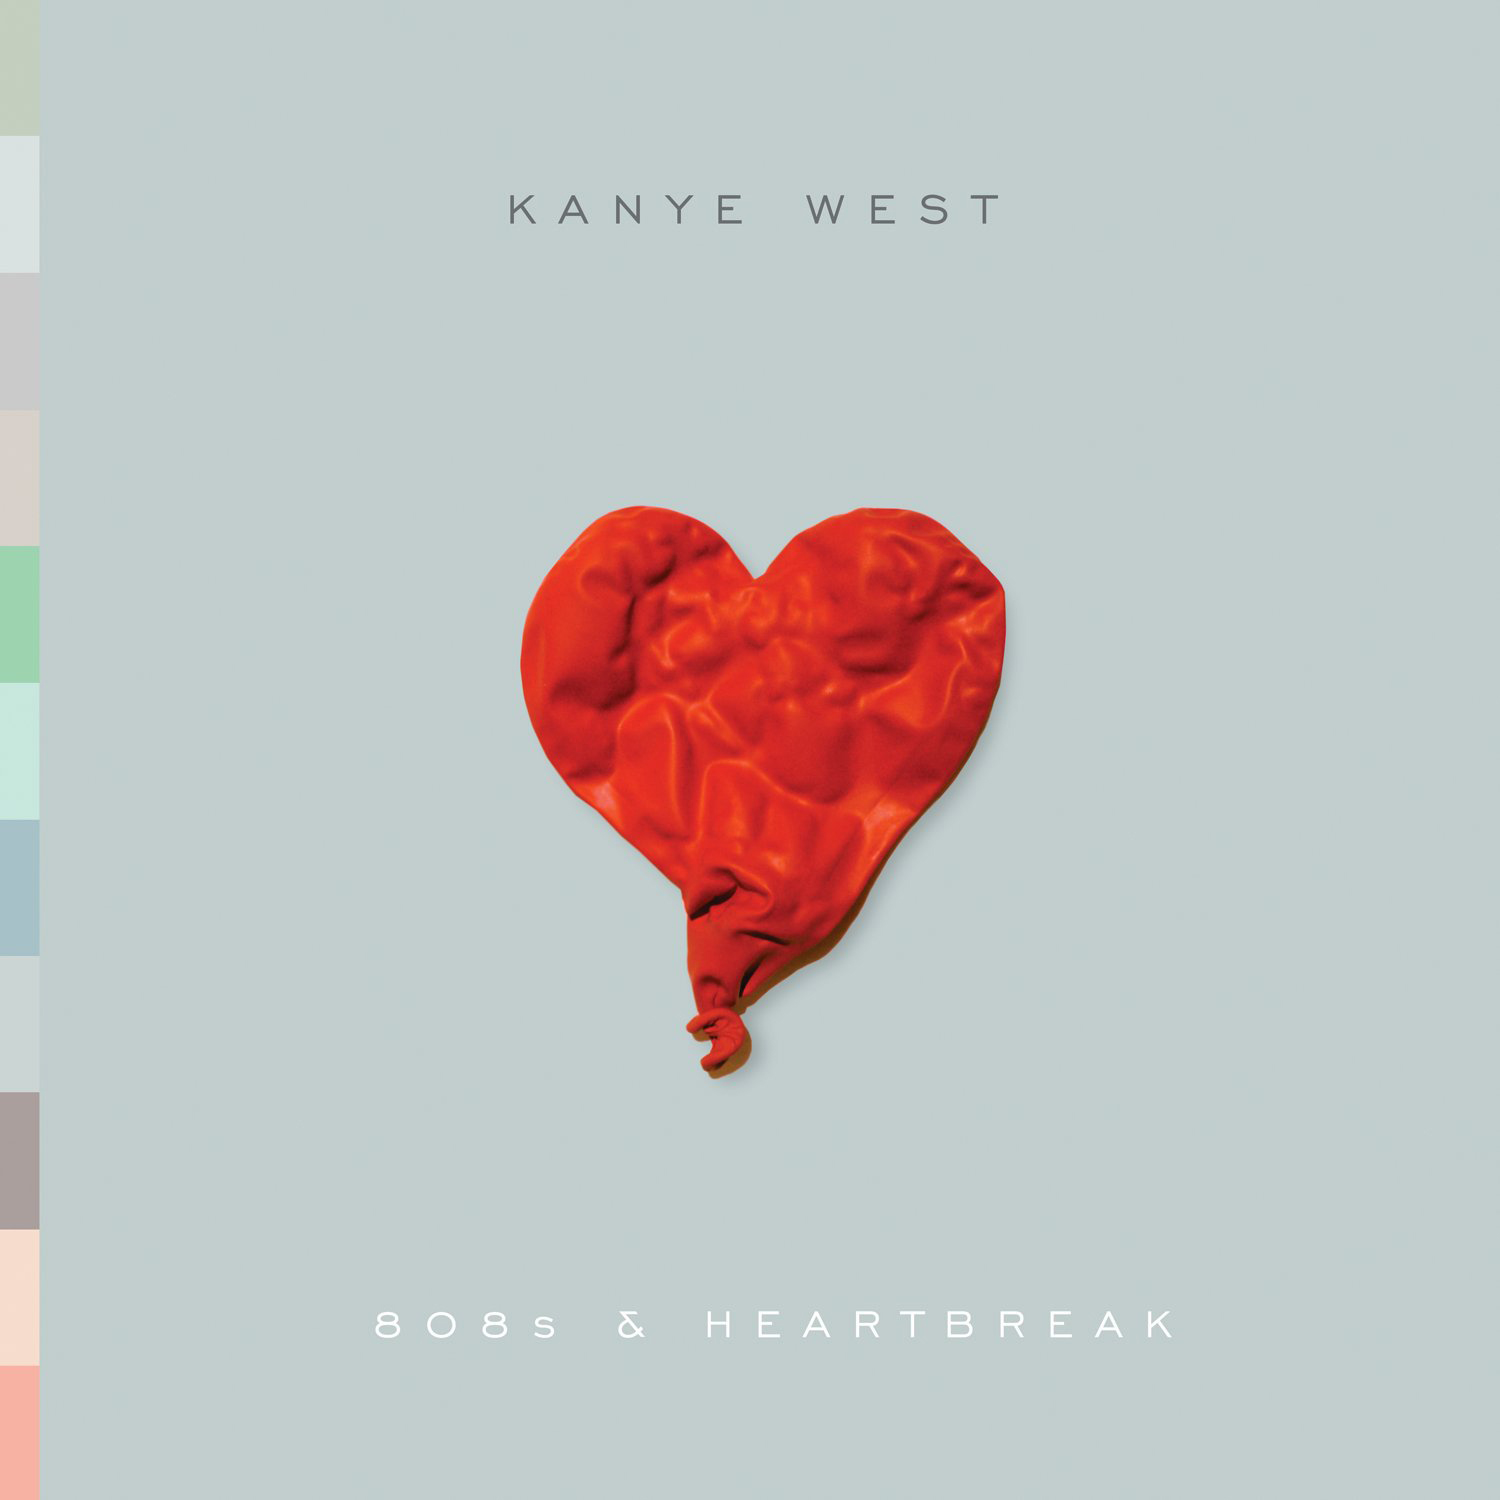 10-808s-and-Heartbreak-2008-alternate-version-Kanye-West-Album-Covers.jpg